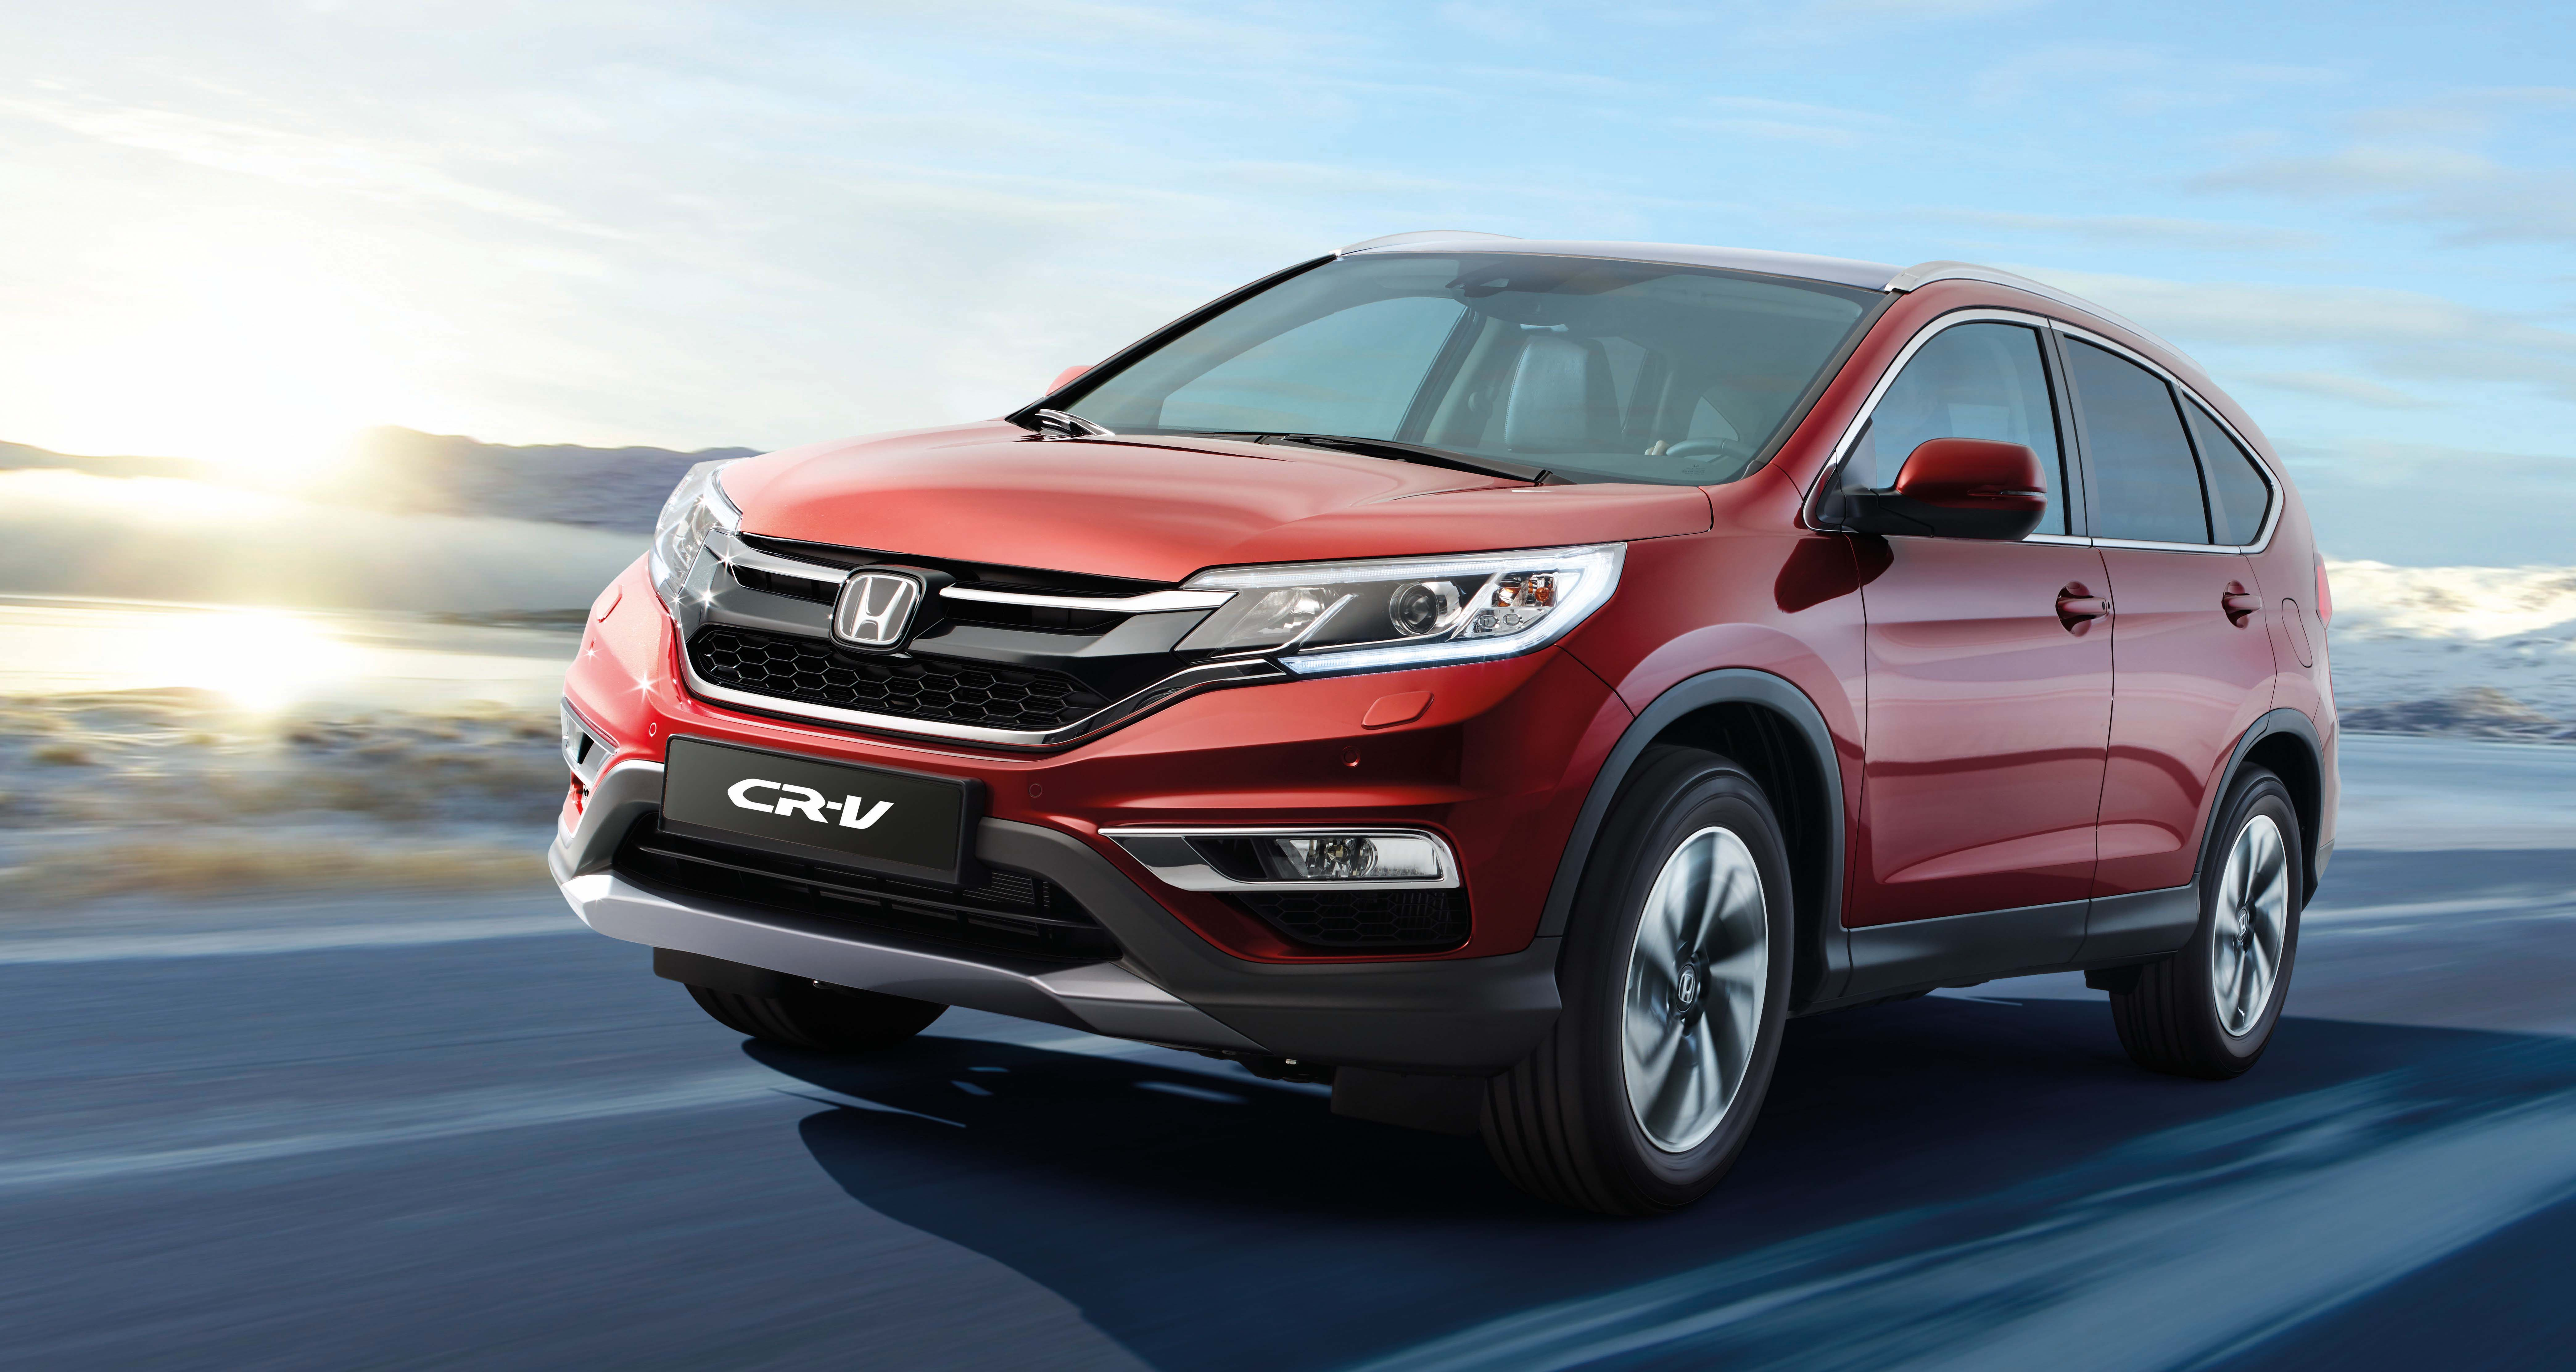 cr honda cars pictures information auto crv iii v and specs